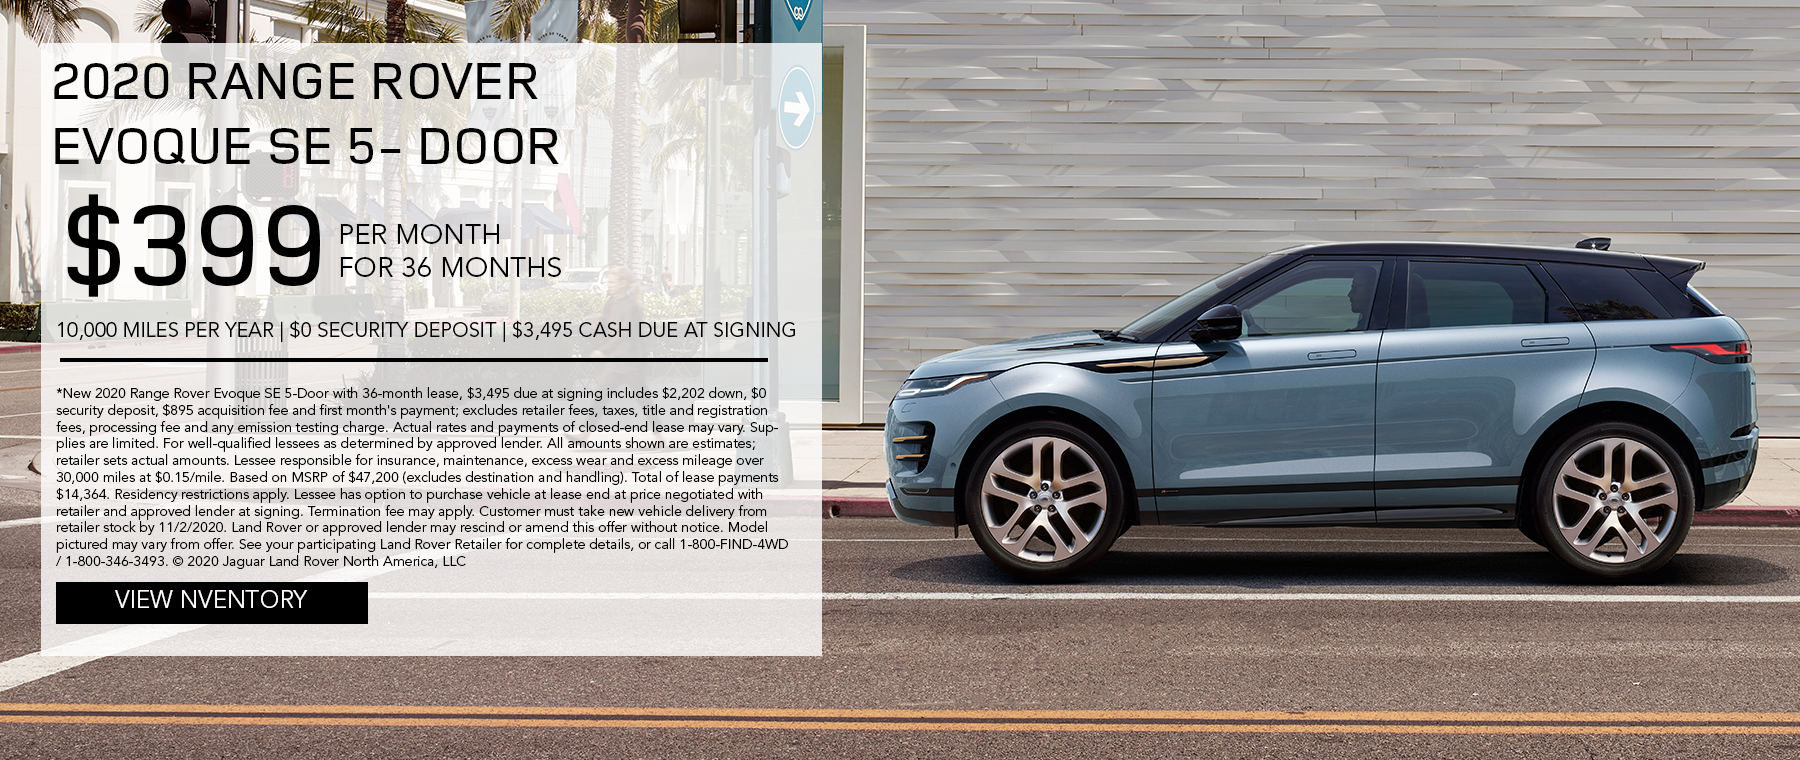 2020 RANGE ROVER EVOQUE SE 5-DOOR. $399 PER MONTH. 36 MONTH LEASE TERM. $3,495 CASH DUE AT SIGNING. $0 SECURITY DEPOSIT. 10,000 MILES PER YEAR. EXCLUDES RETAILER FEES, TAXES, TITLE AND REGISTRATION FEES, PROCESSING FEE AND ANY EMISSION TESTING CHARGE. ENDS 11/2/2020.